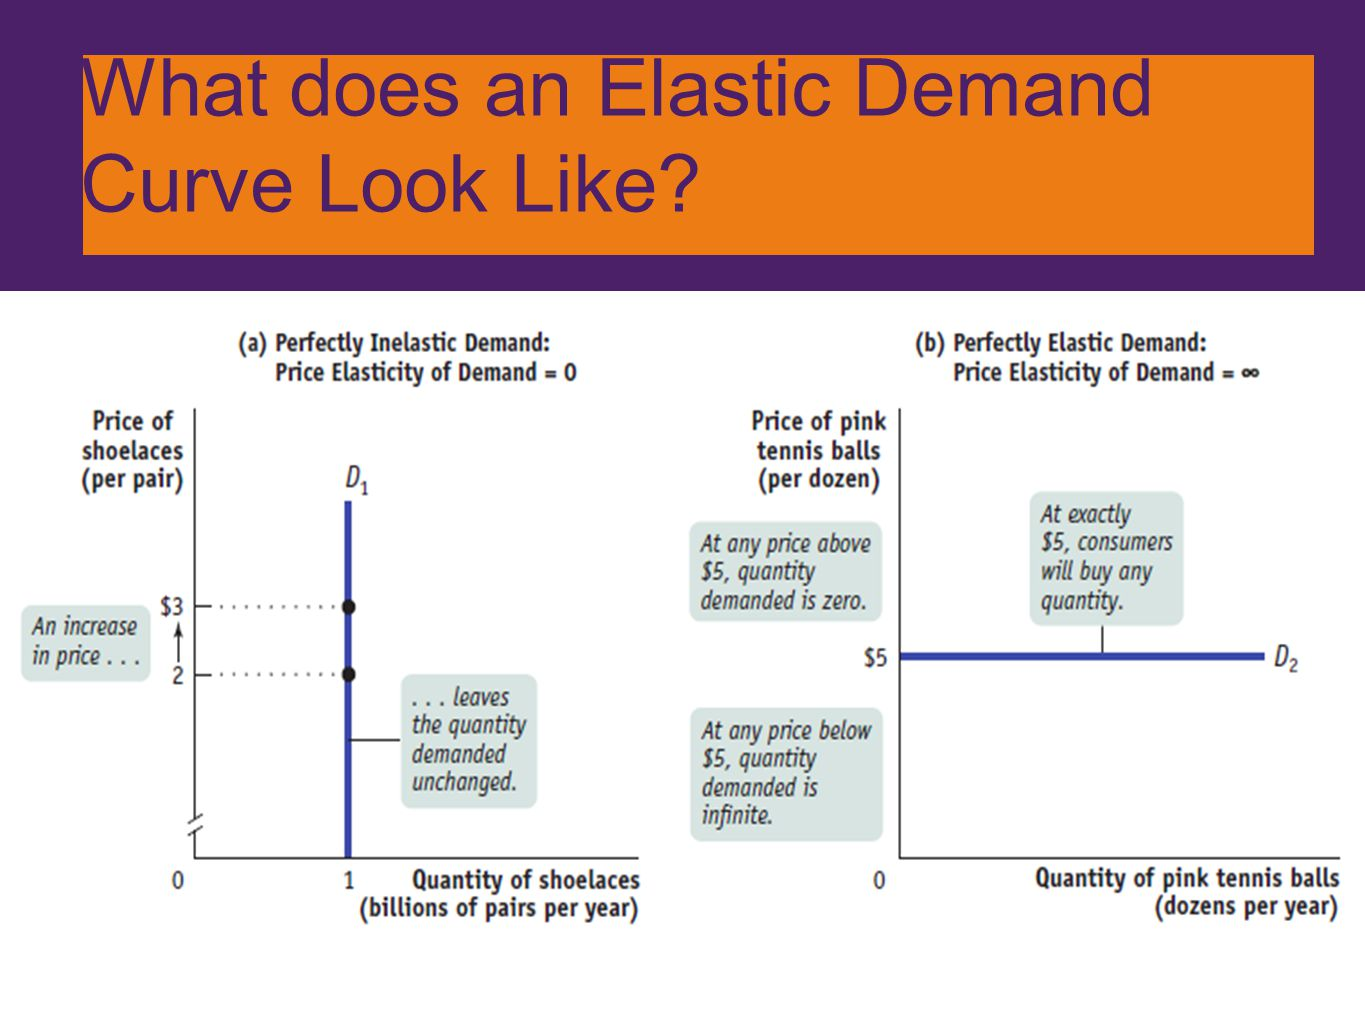 What does an Elastic Demand Curve Look Like?